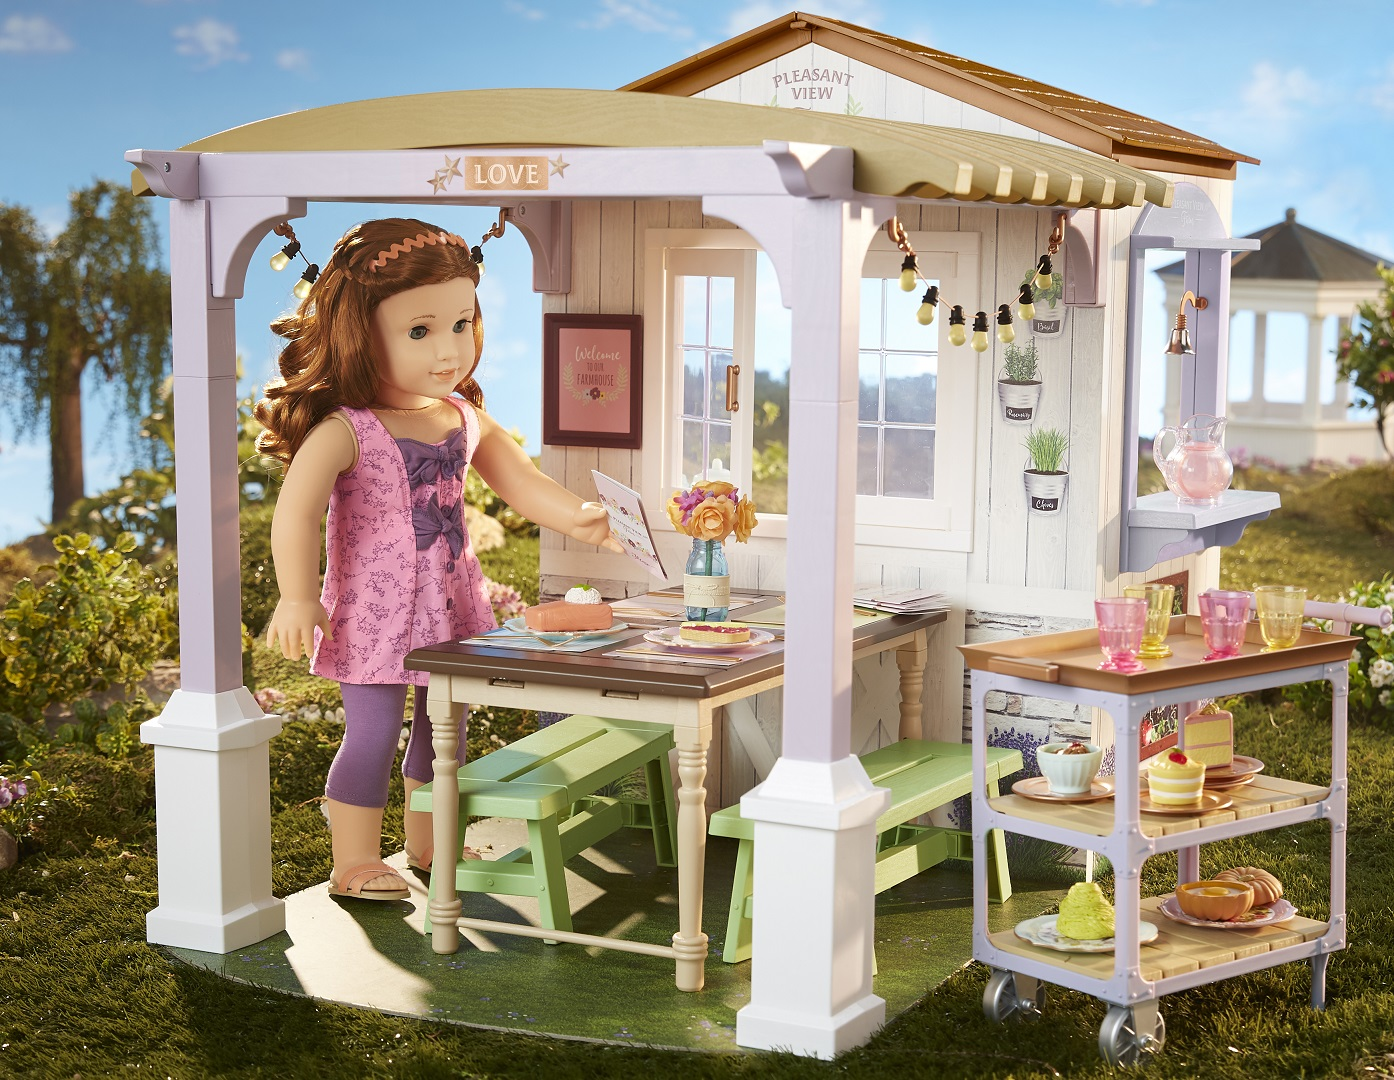 2019 American Girl Doll of the Year Family Farm Restaurant